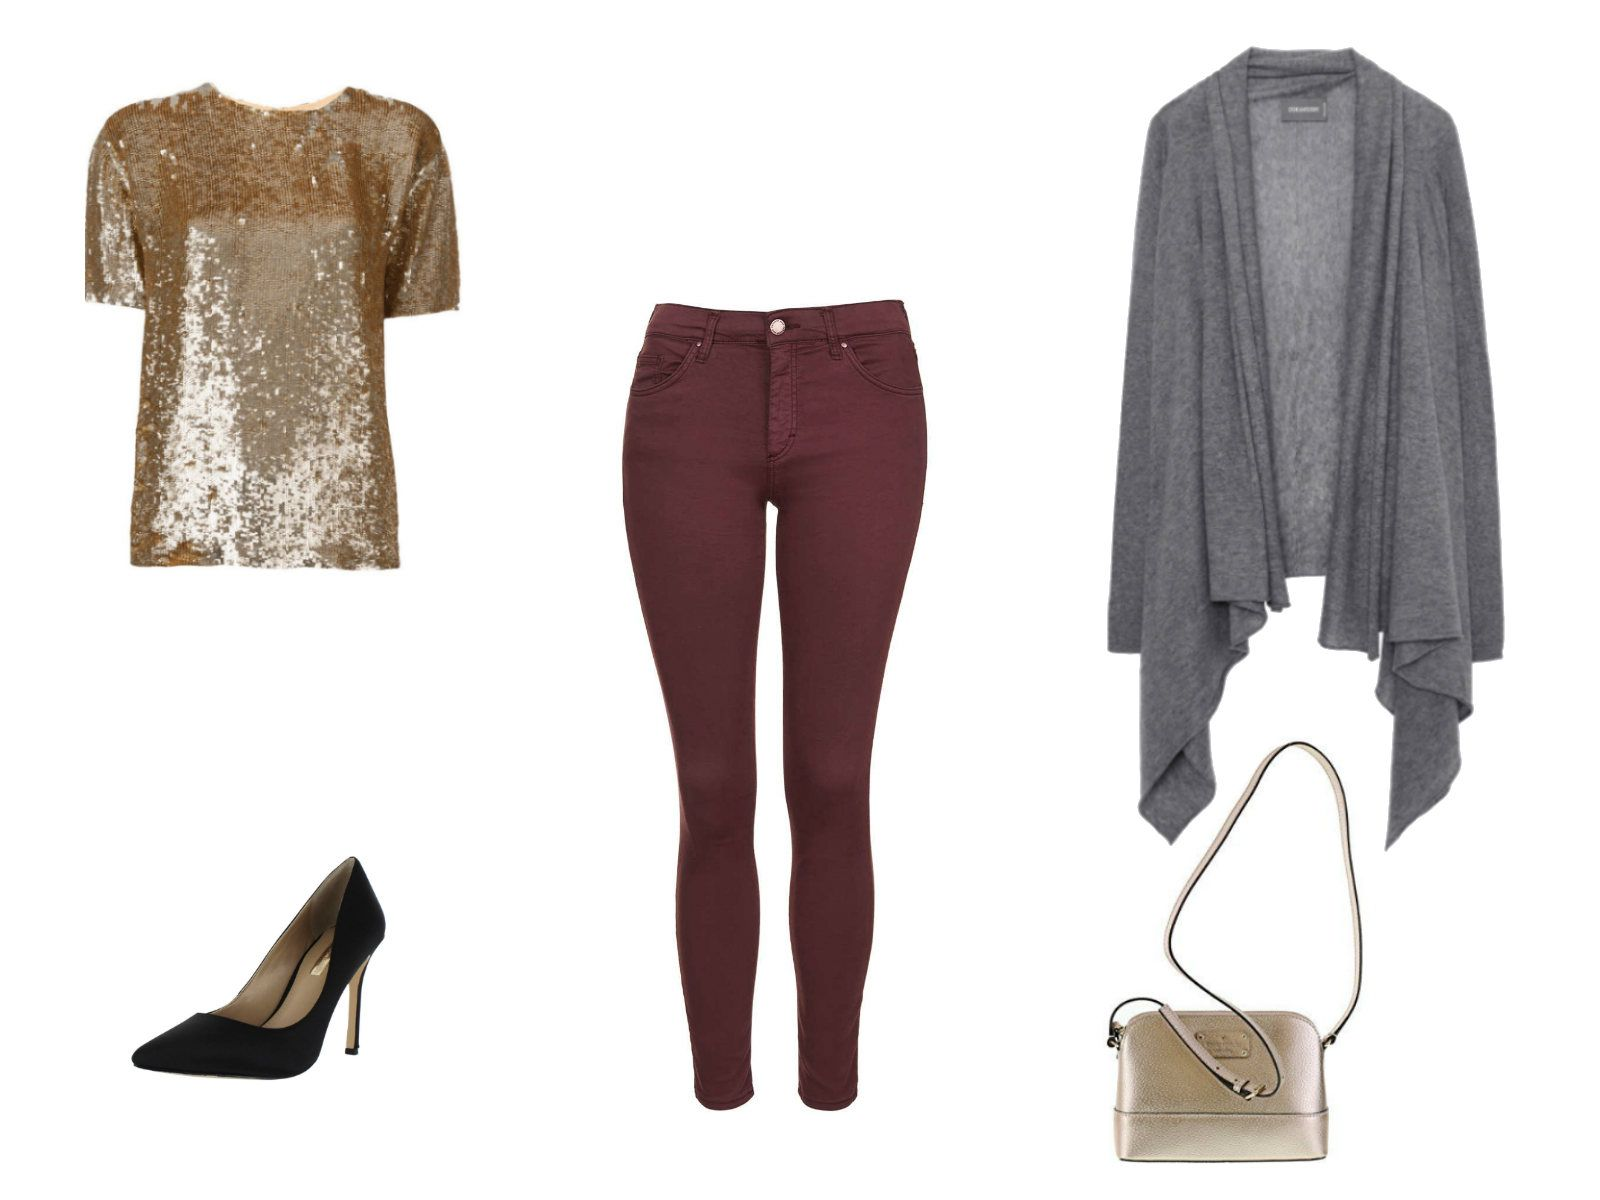 Winter date outfit with colored jeans